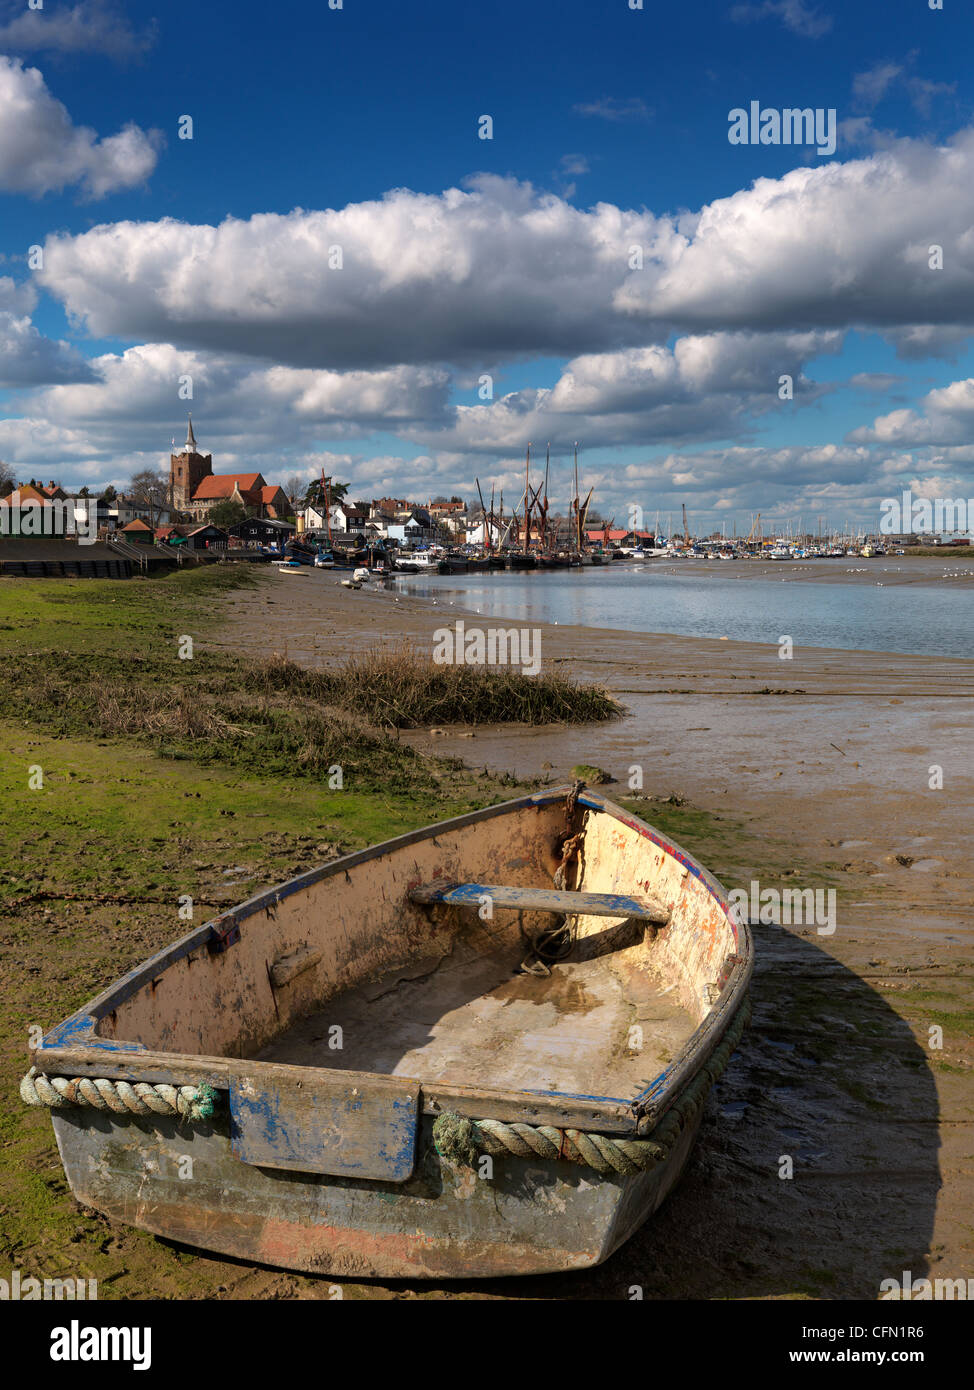 A small boat at Maldon on the Blackwater Estuary, looking towards Hythe Quay - Stock Image